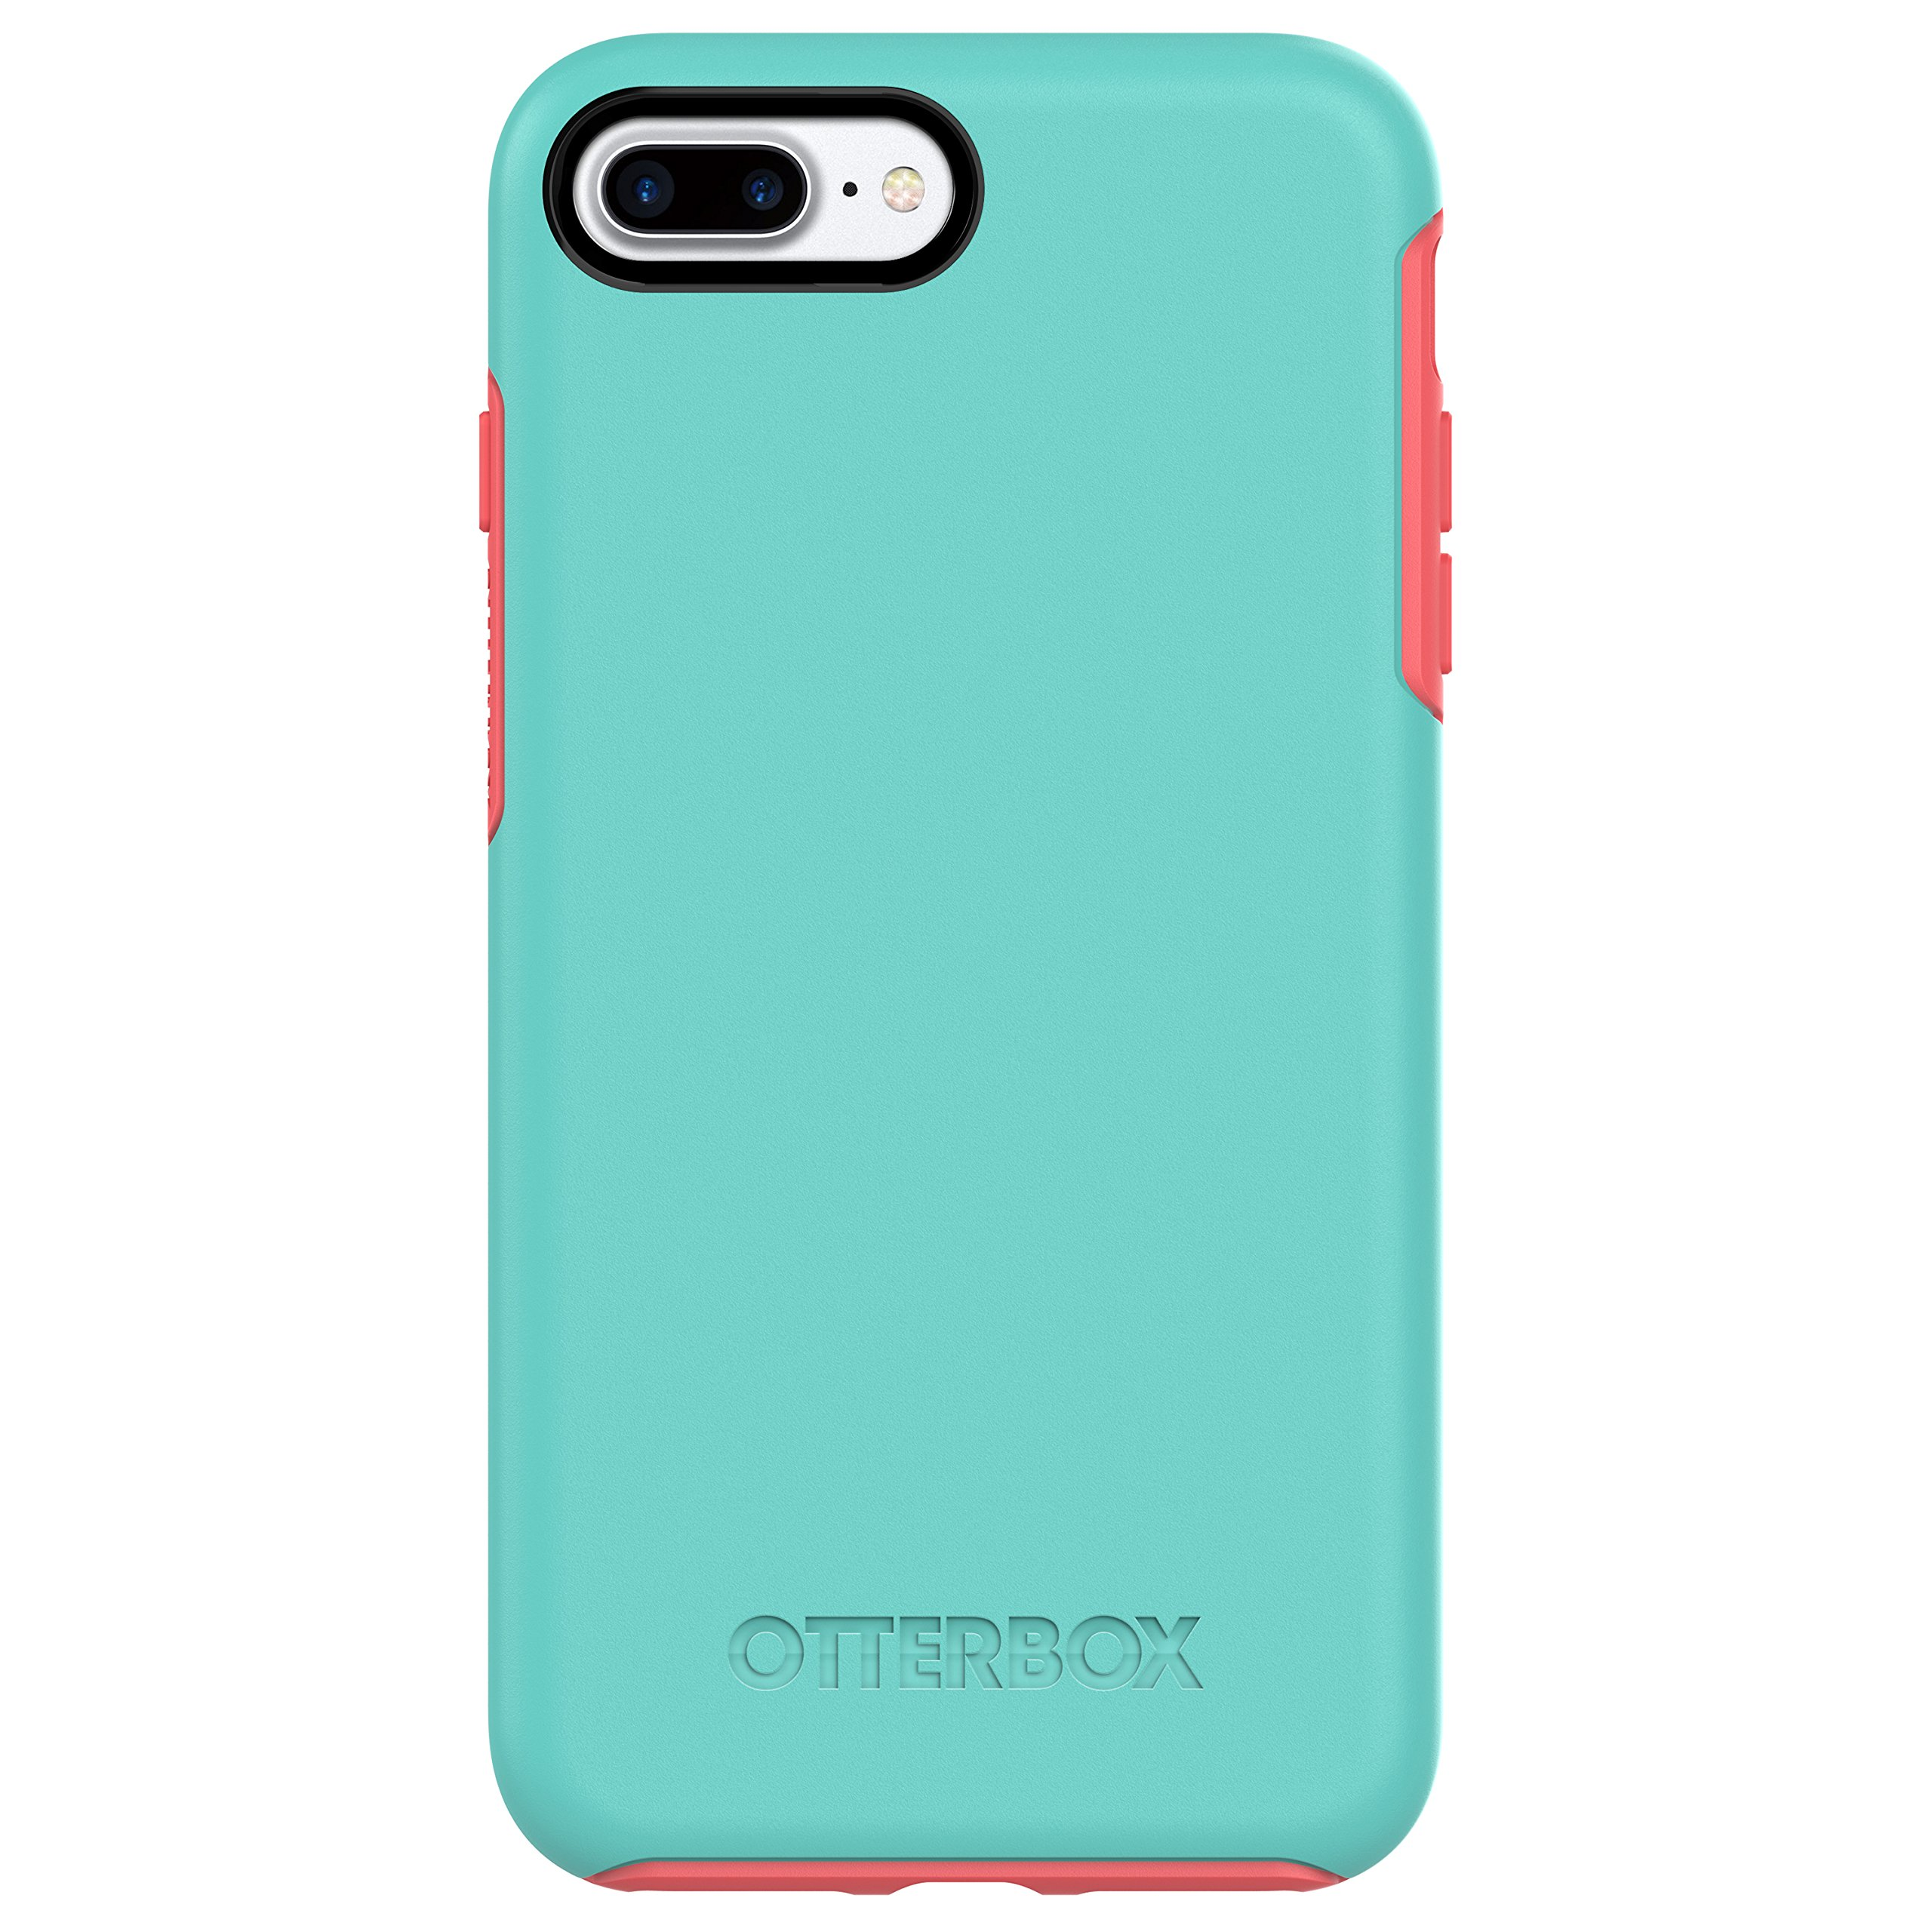 free shipping fe869 459ba OtterBox SYMMETRY SERIES Case for iPhone 7 Plus (ONLY) - Retail Packaging -  CANDY SHOP (AQUA MINT/CANDY PINK)